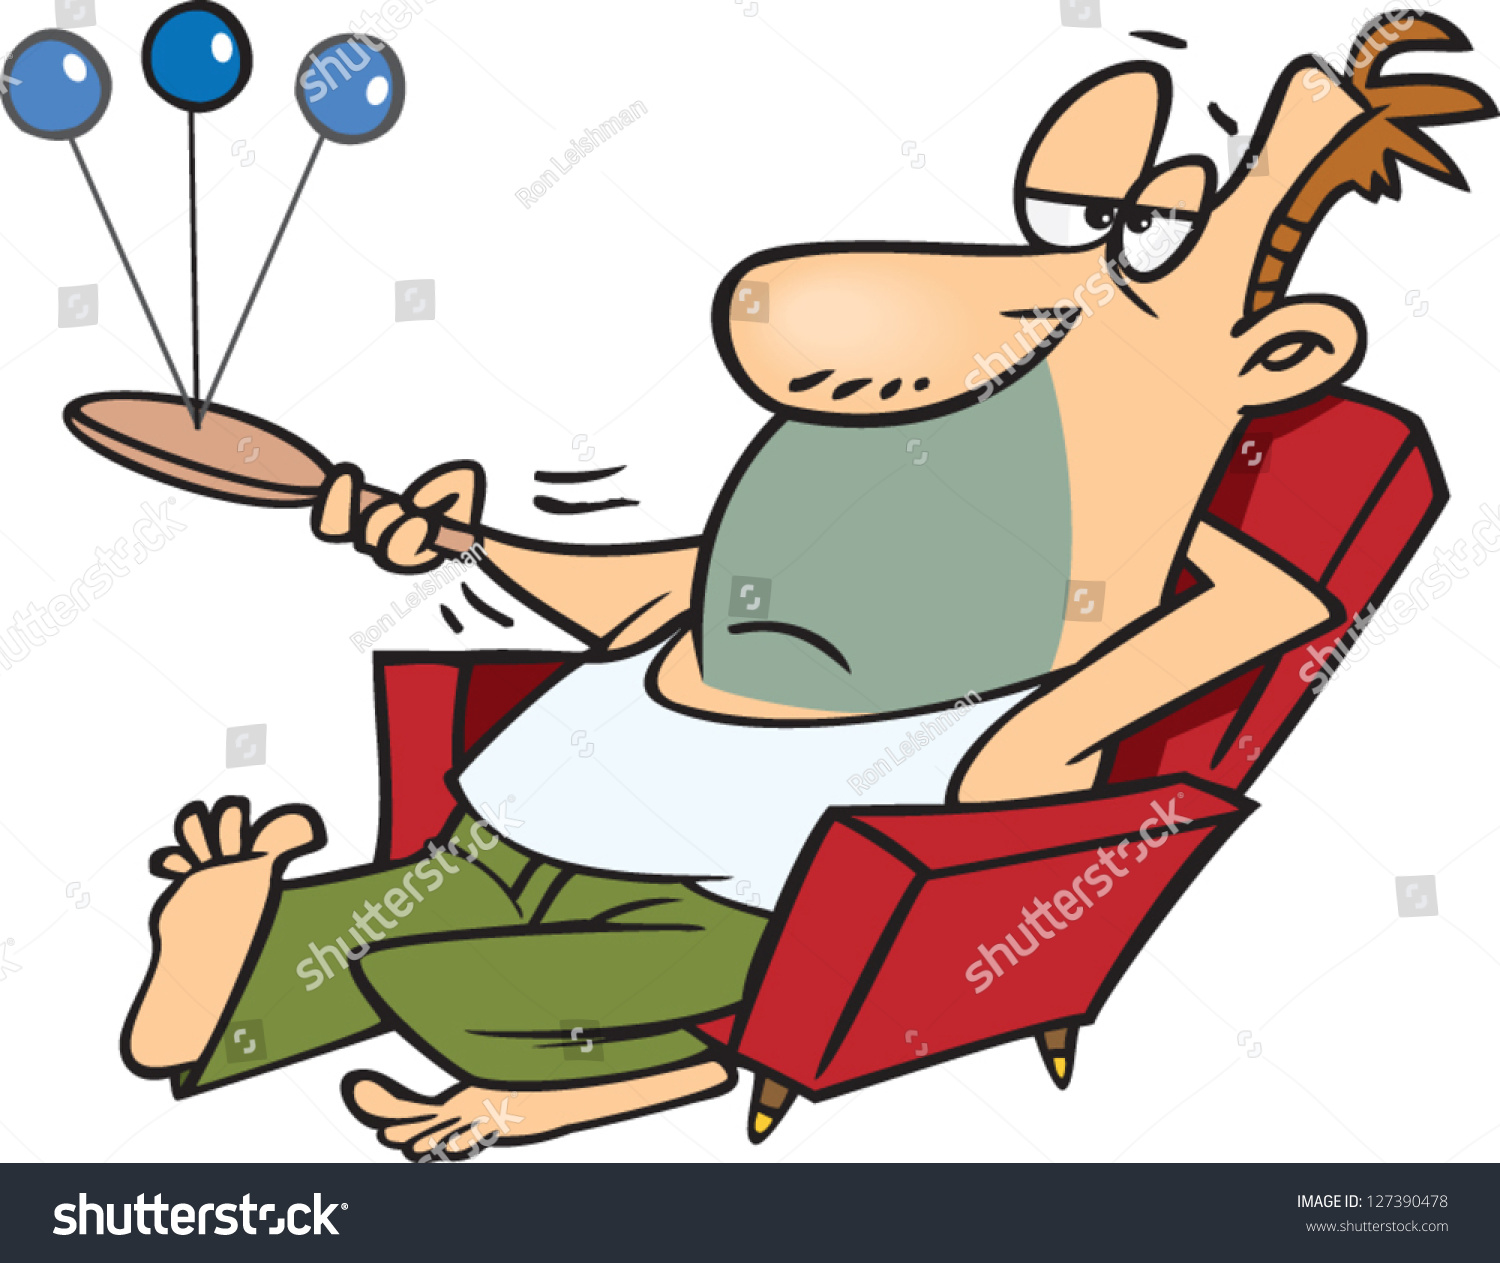 Lazy Person On Couch Cartoon Vector Illustration La...